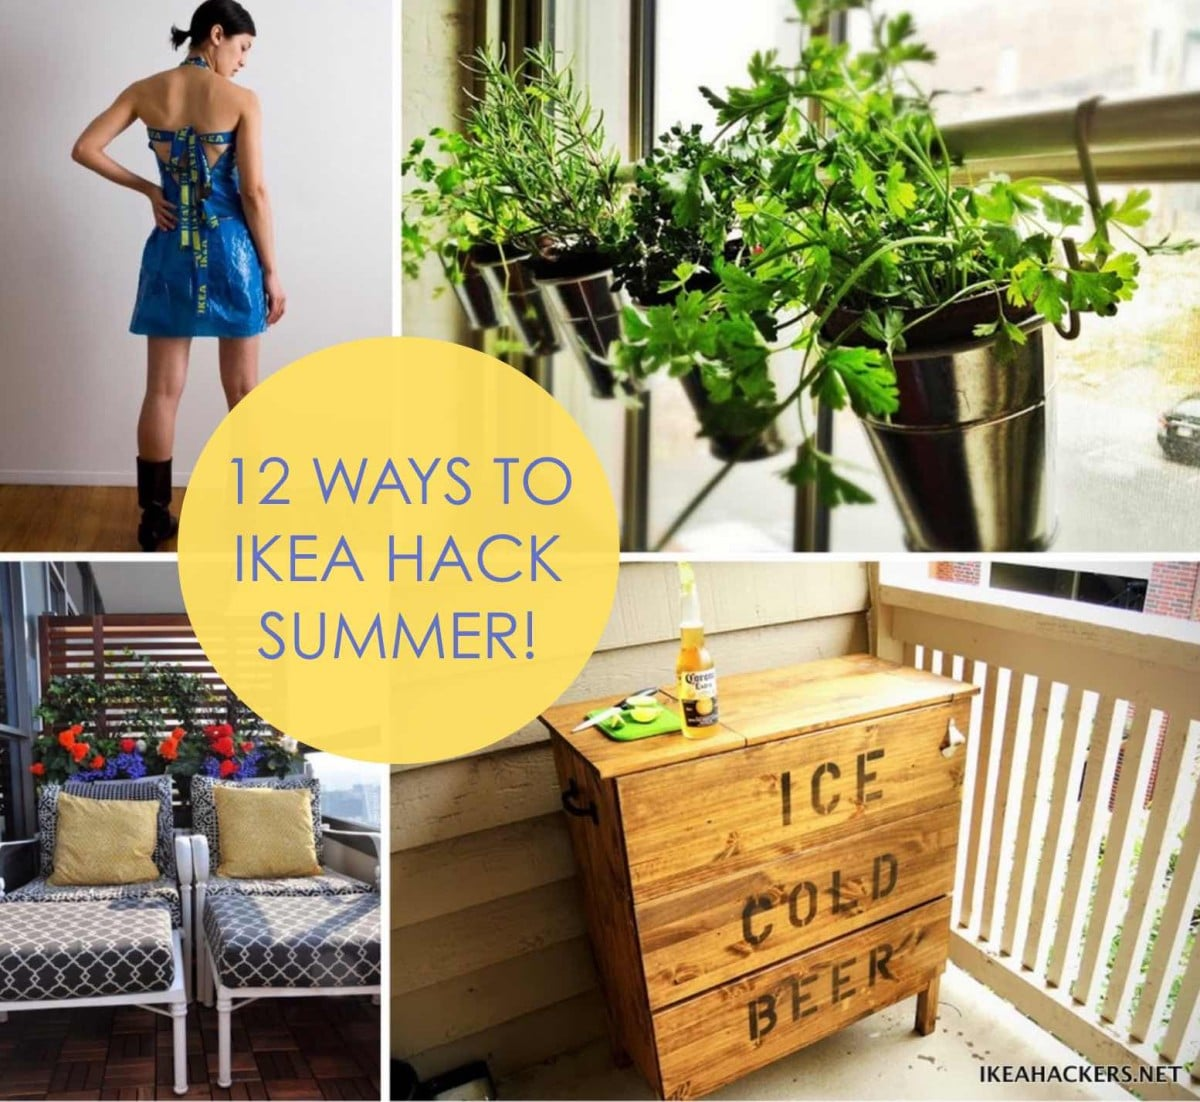 12 Ways To Ikea Hack Summer Ikea Hackers Ikea Hackers